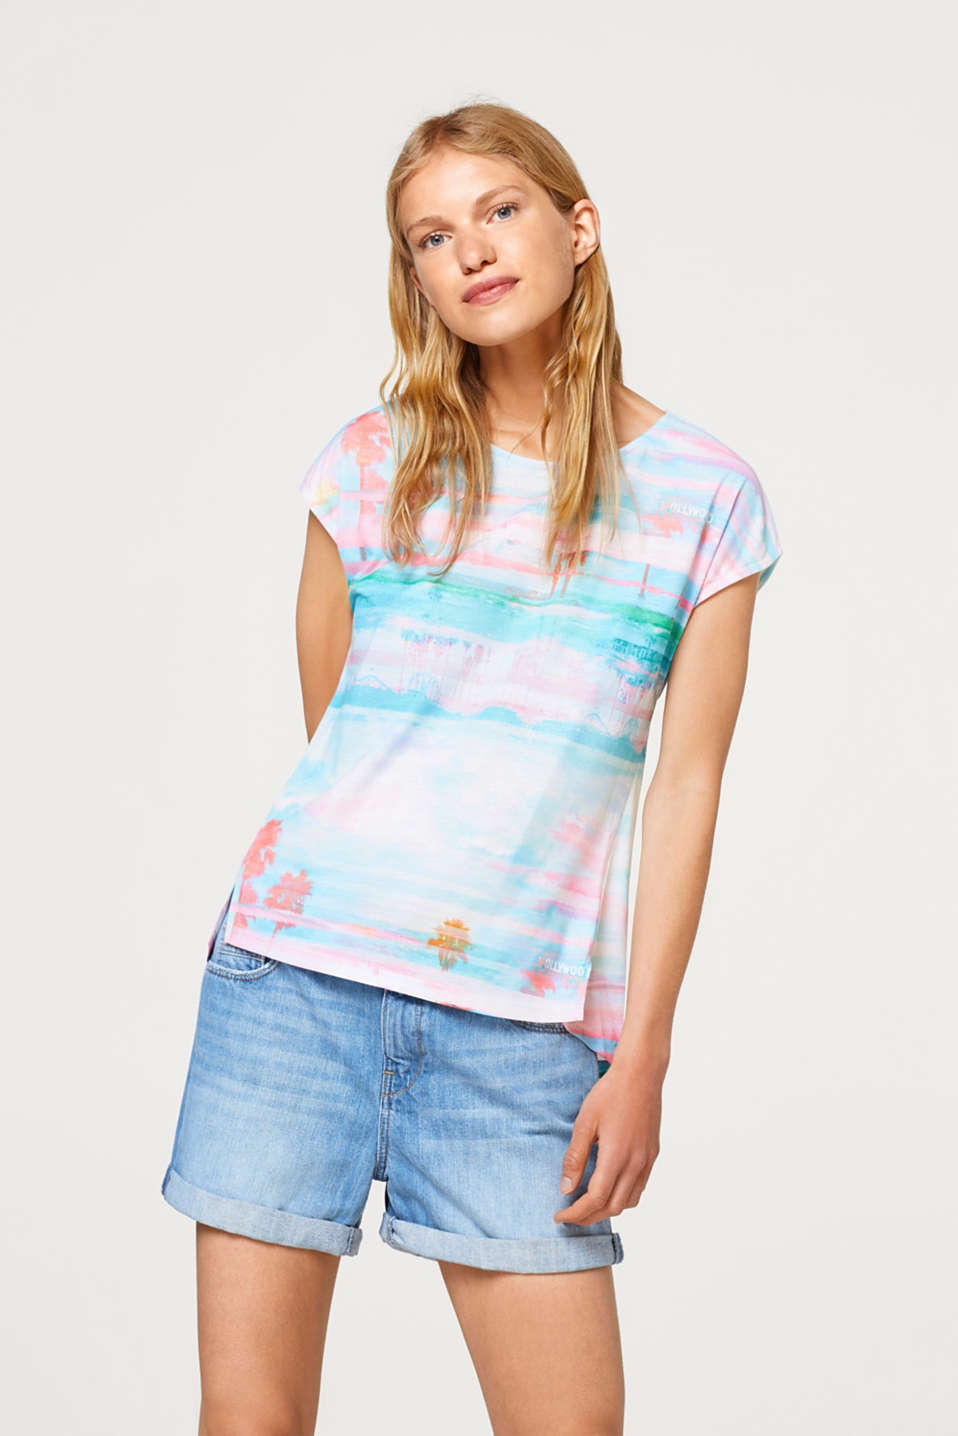 Esprit - T-shirt with colourful watercolour print